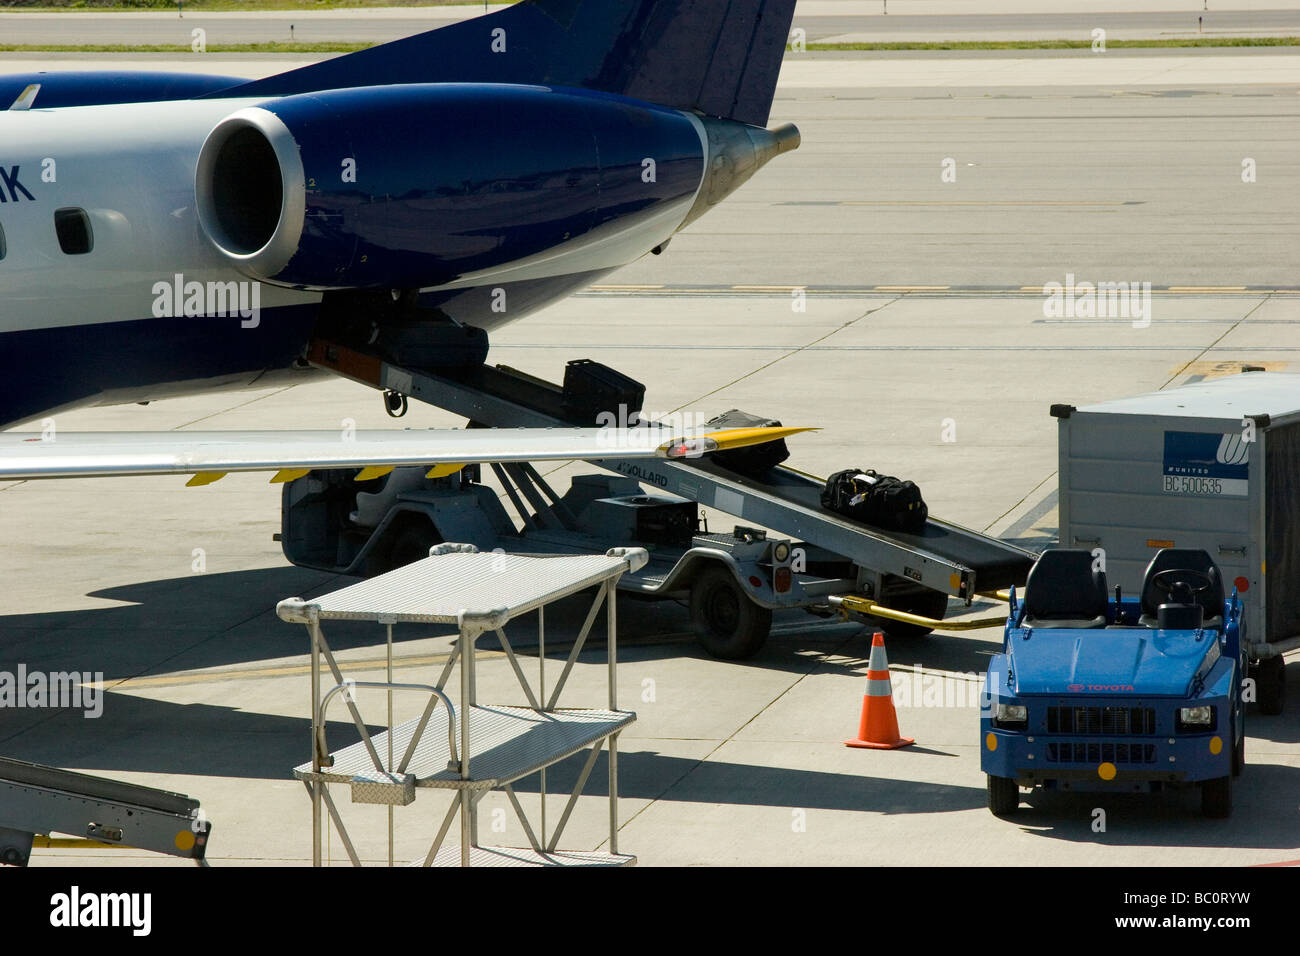 Airplane on tarmac being loaded with luggage - Stock Image